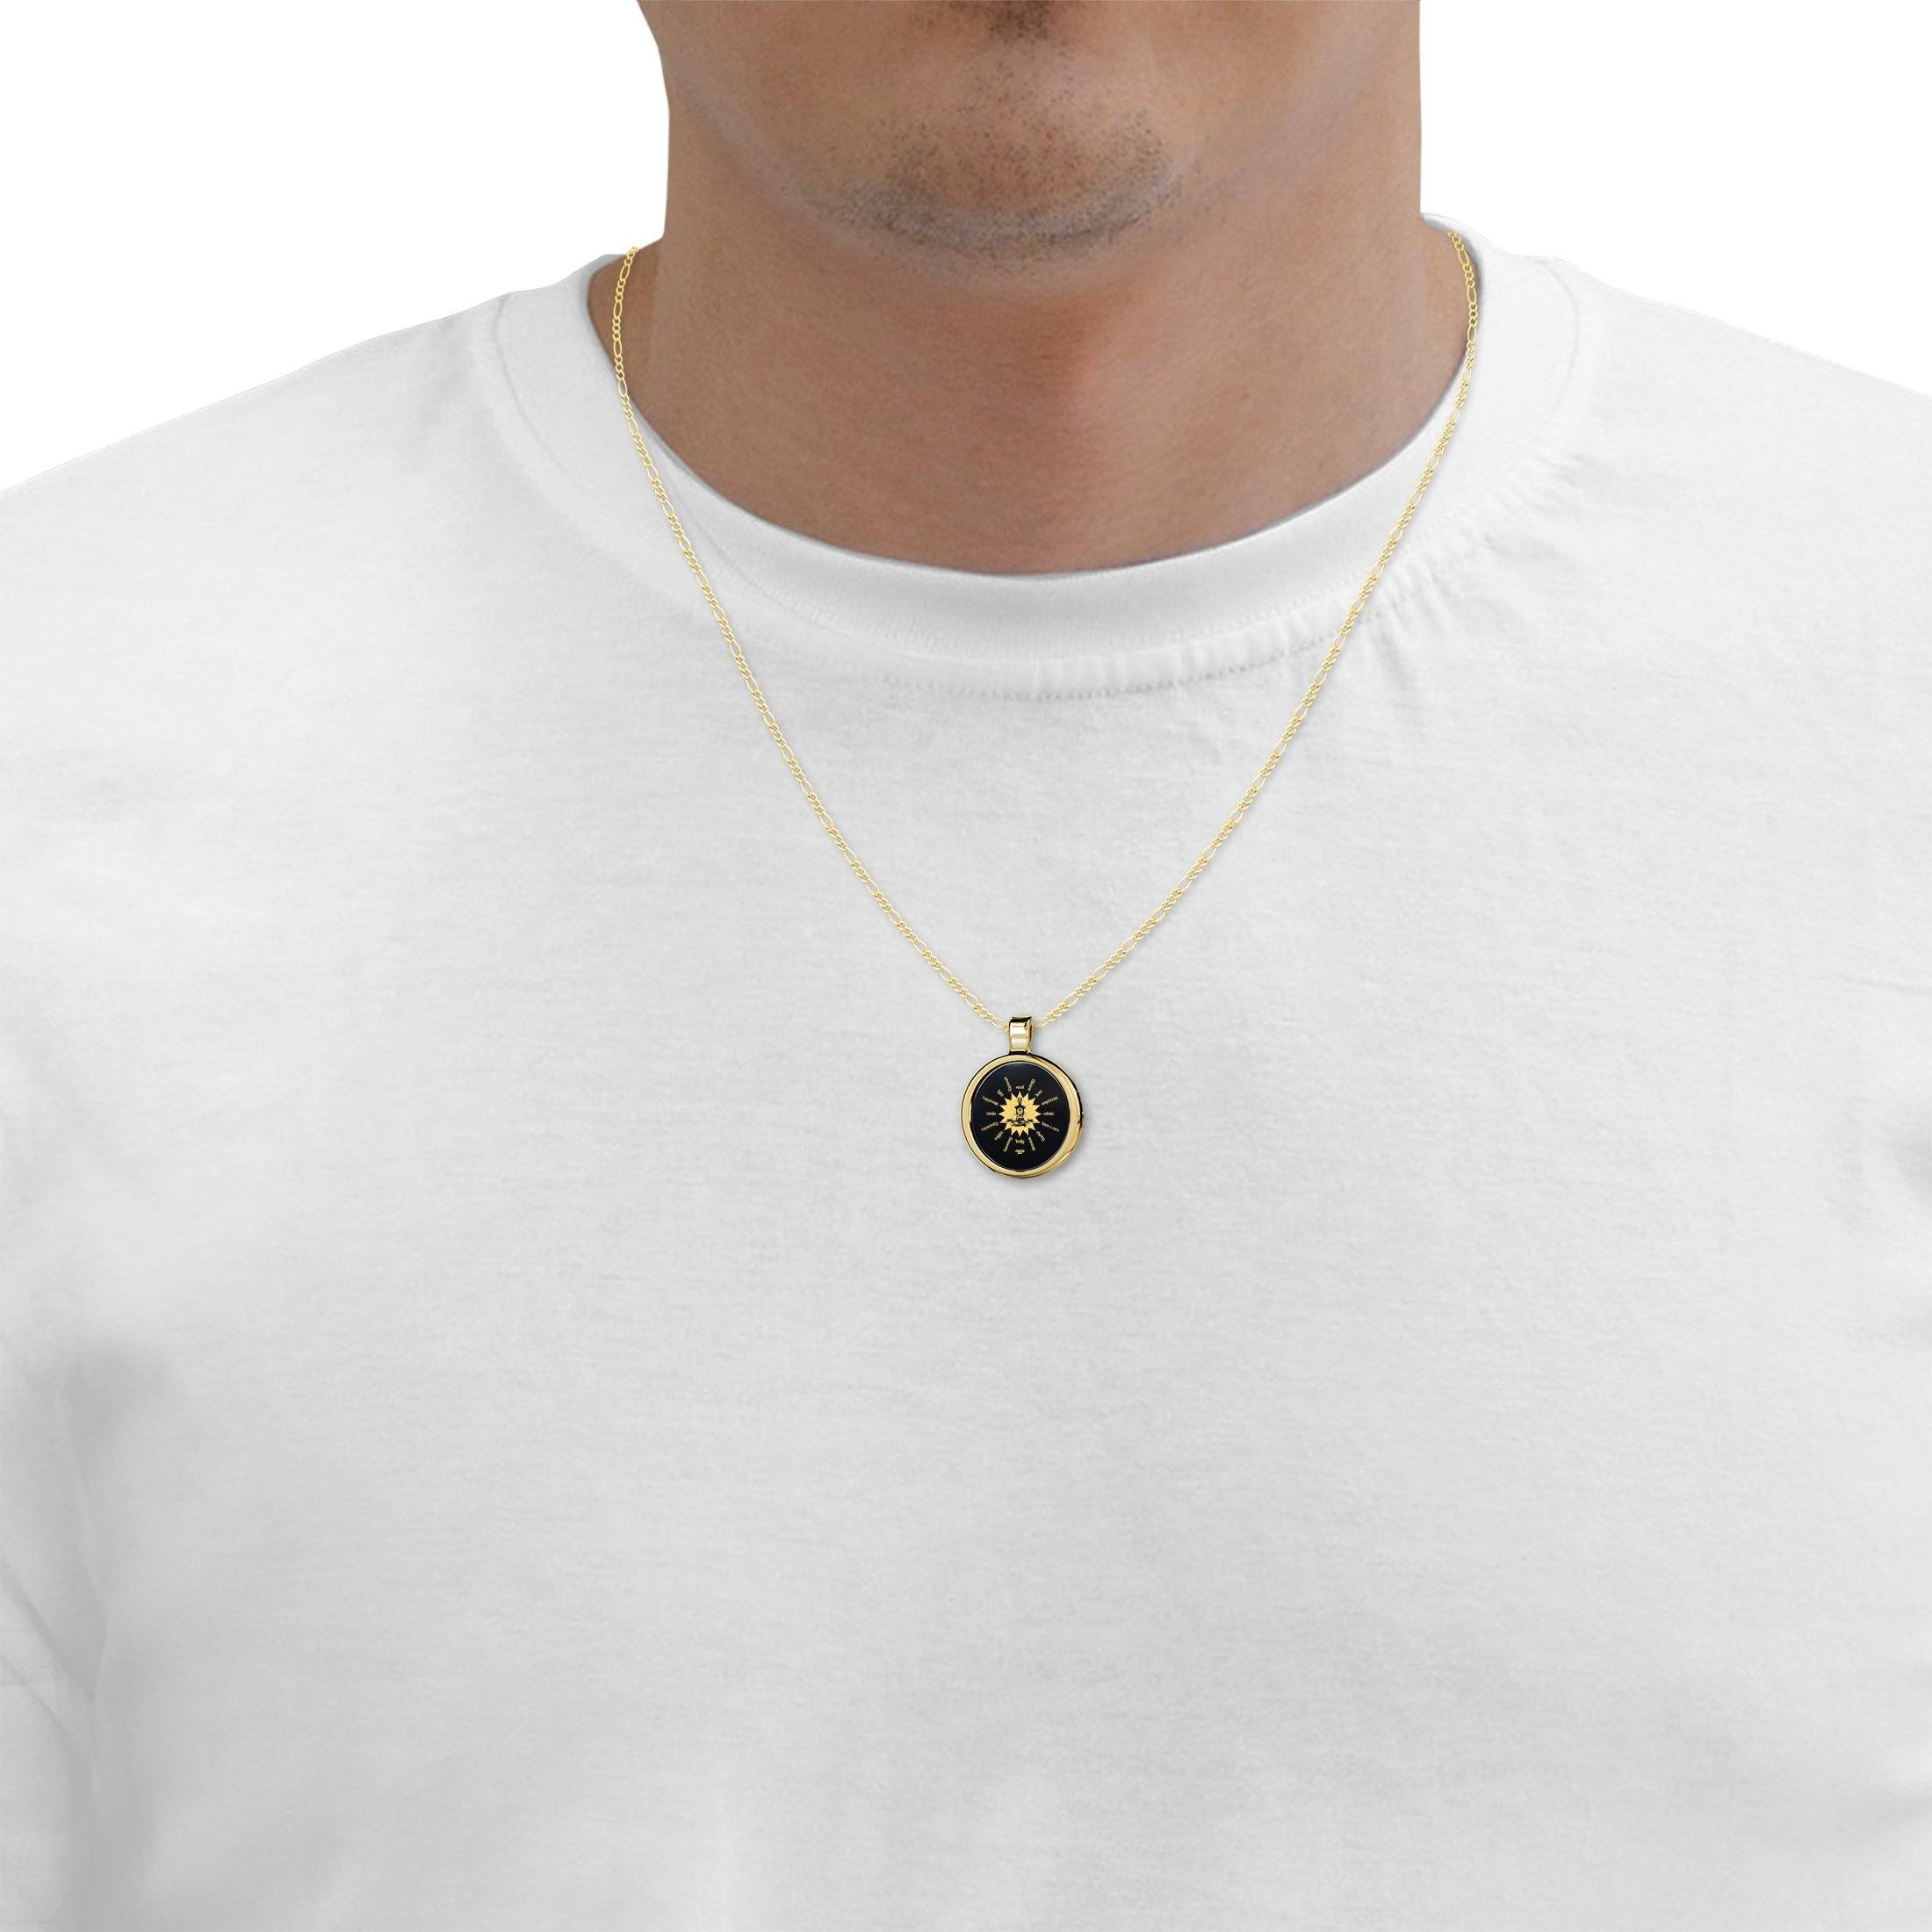 Gold Buddha Necklace for Him, Nano Jewelry